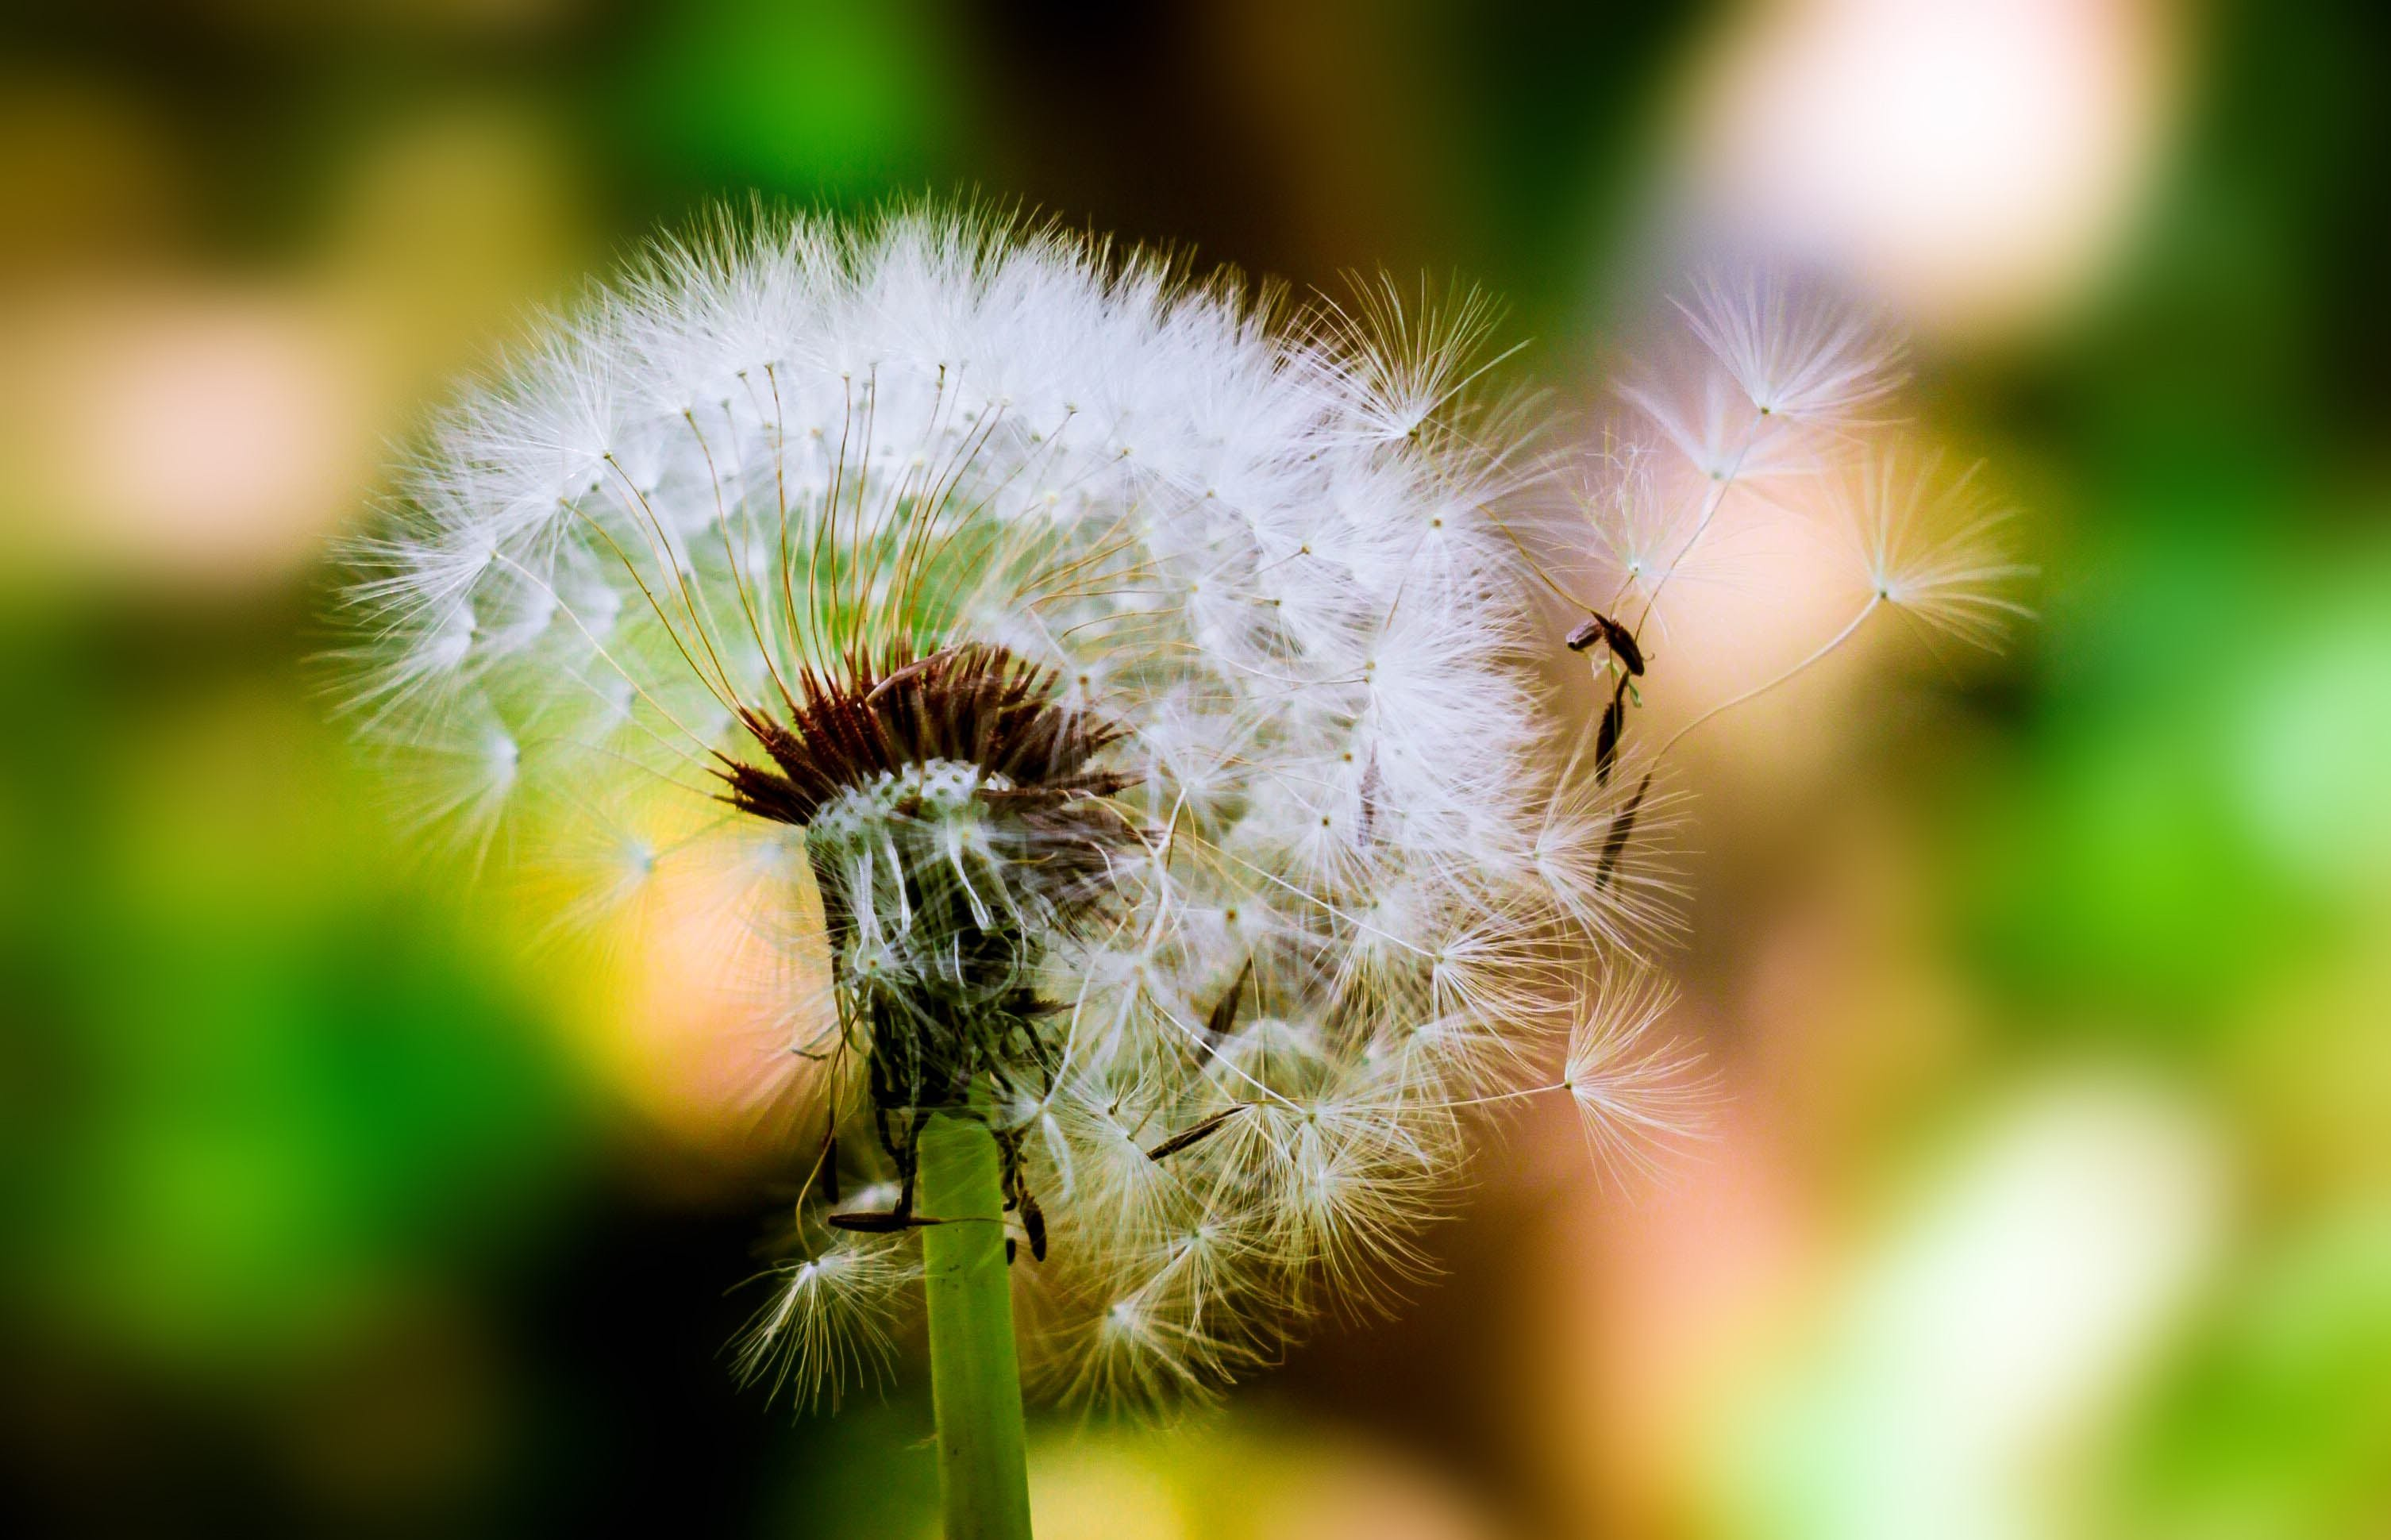 Selective Focus Photograph of Dandelion